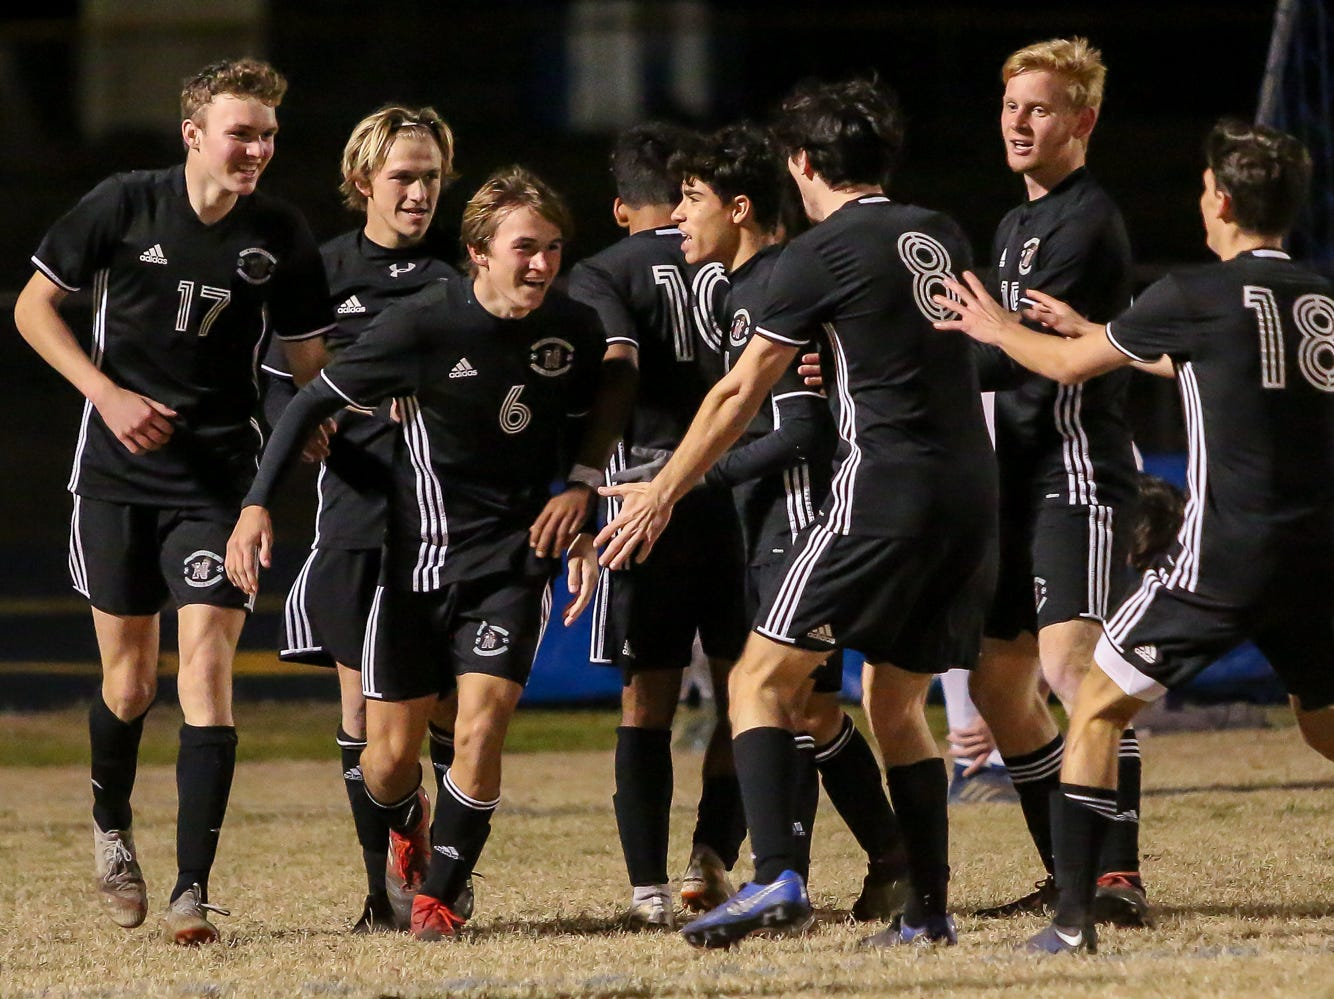 Niceville's Jacob Simmons (6) is congratulated by his teammates after scoring a goal against Navarre in the District 1-4A championship game at Washington High School on Friday, February 1, 2019. For the second straight year, Niceville shut-out Navarre to win the championship. Last year, the score was 6-0 and this year it was 7-0.